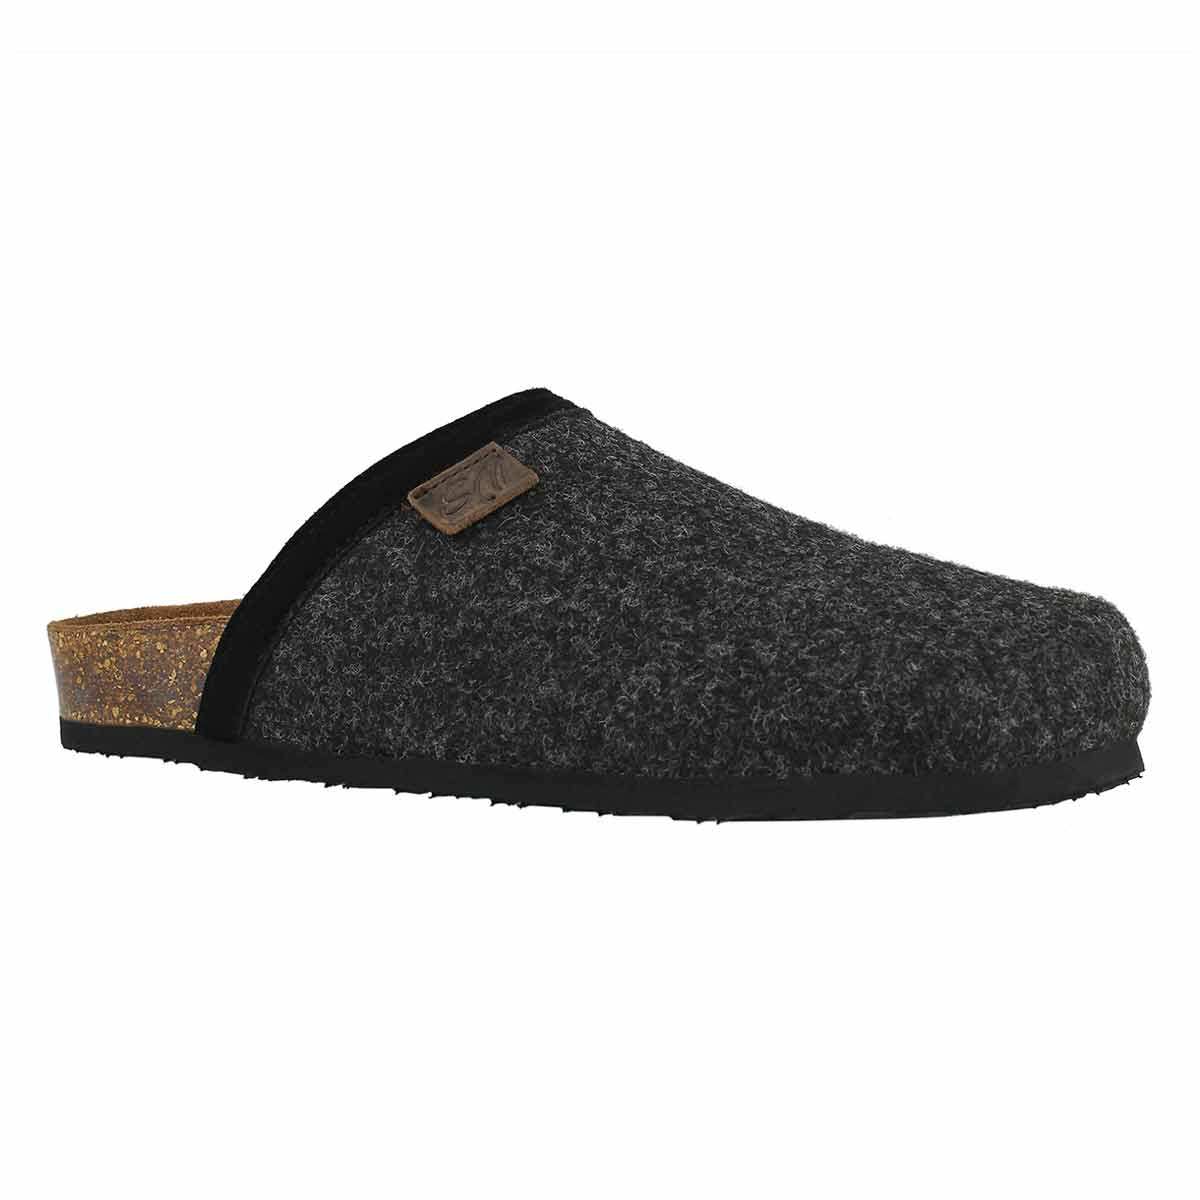 Mns Cloggin-M grey wool casual clog